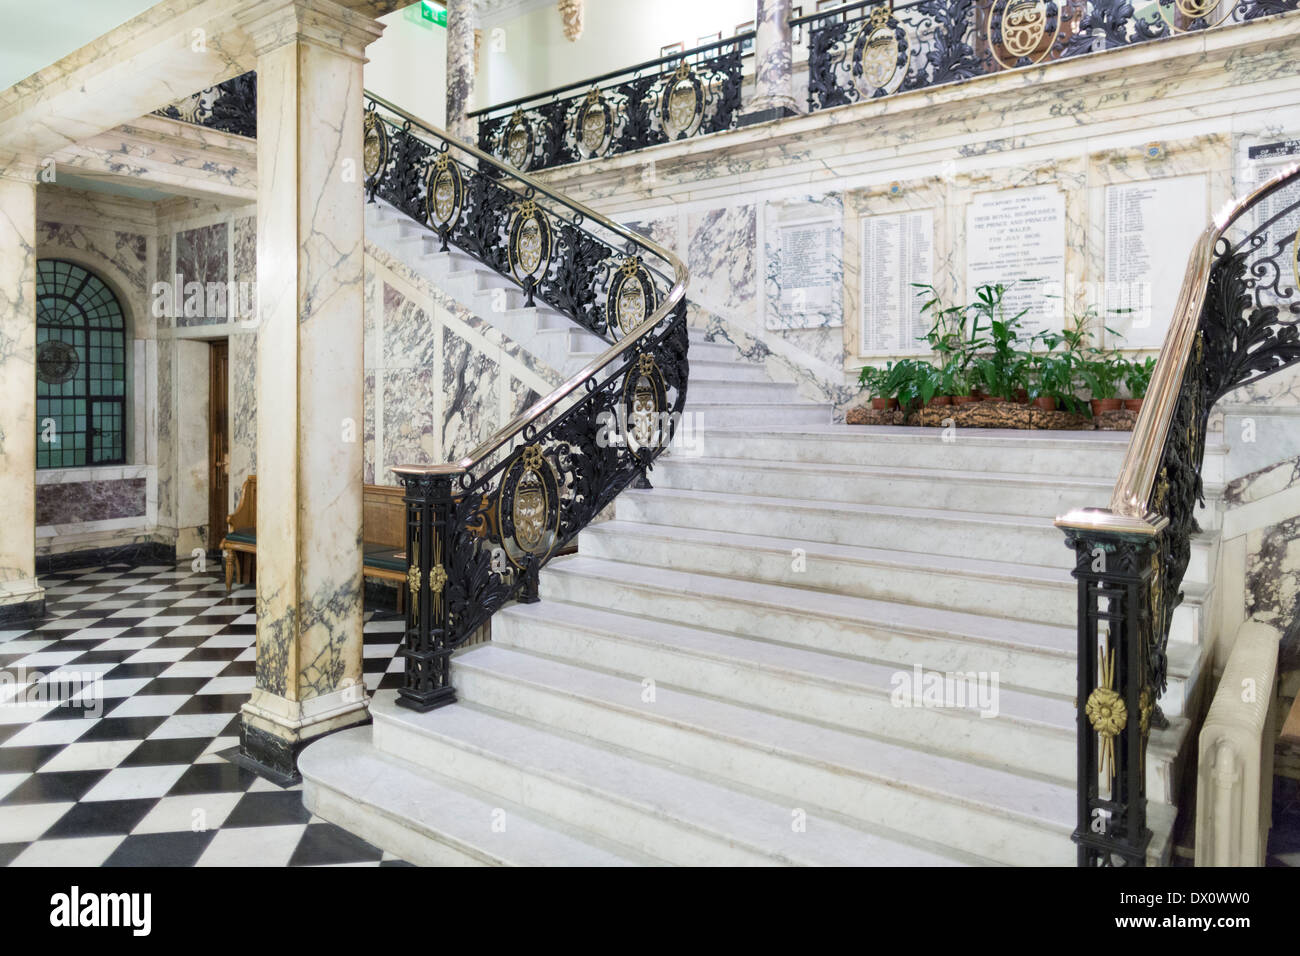 Stockport town hall Marble staircase - Stock Image